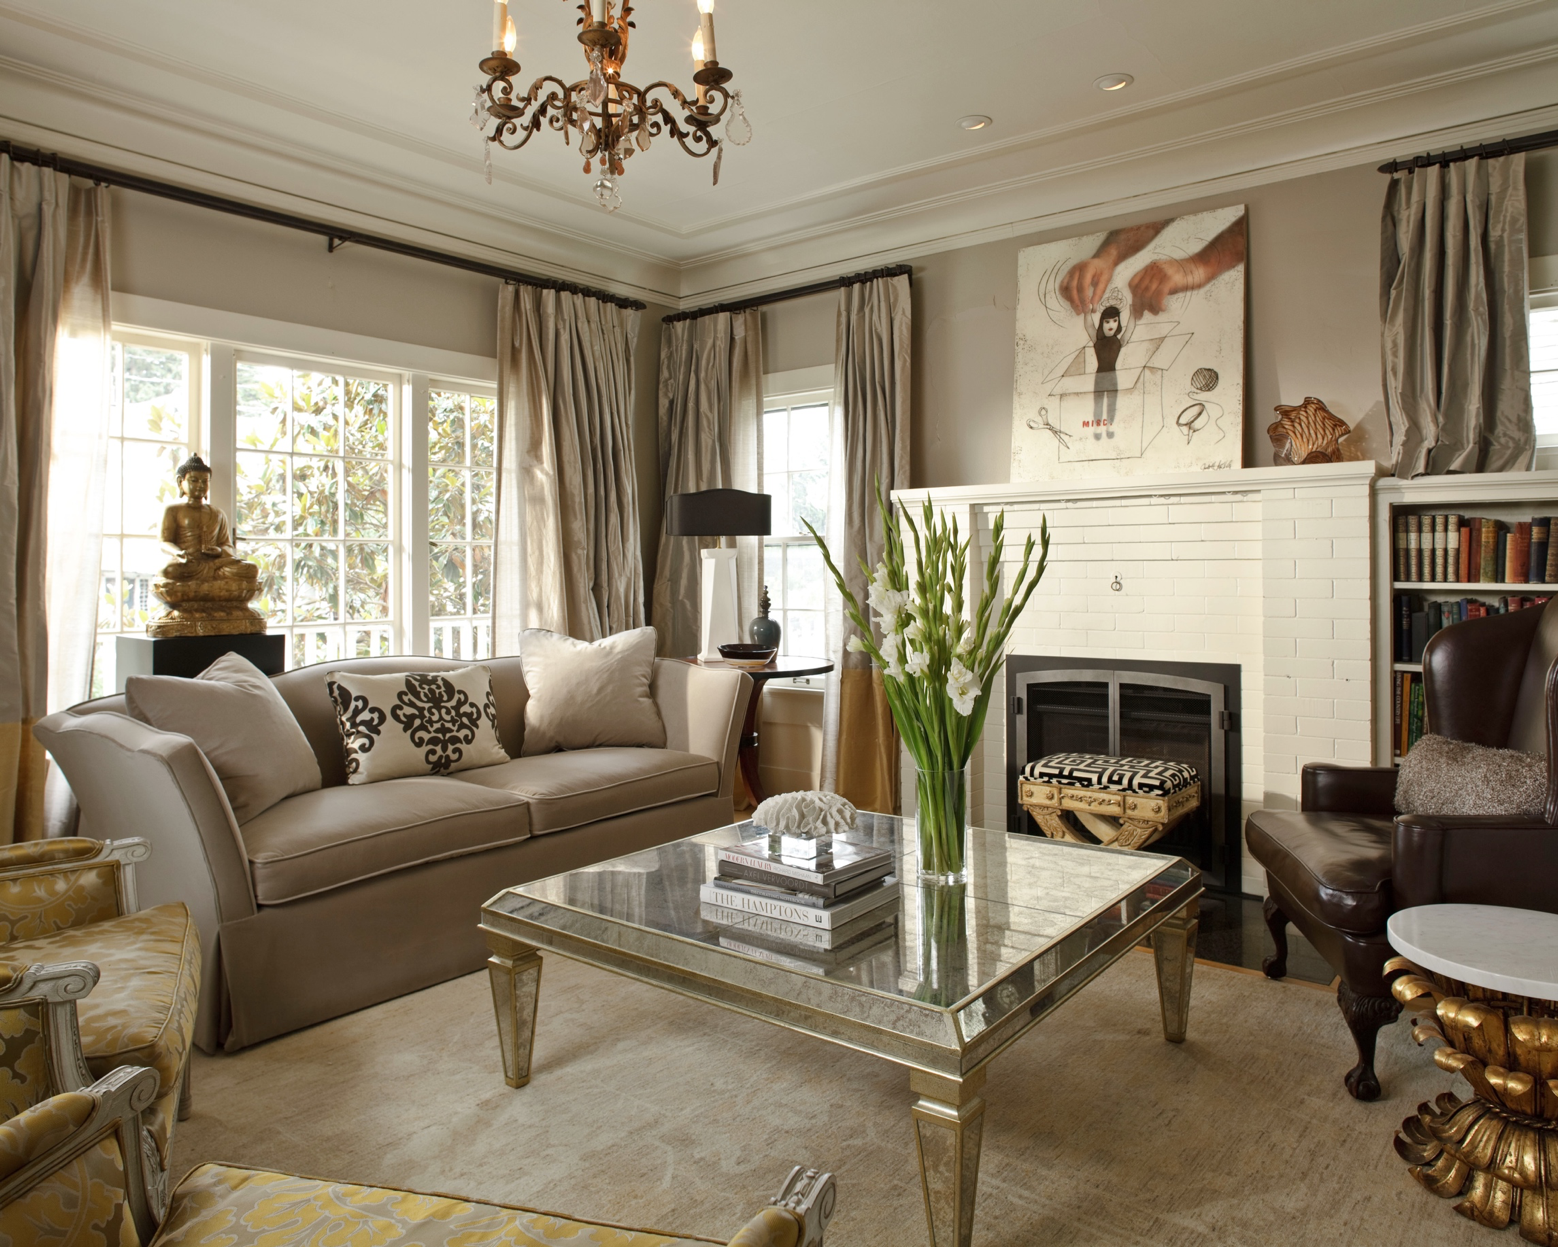 Living Room in Platinum Grey by Hyde Evans Design  Photo by William Wright